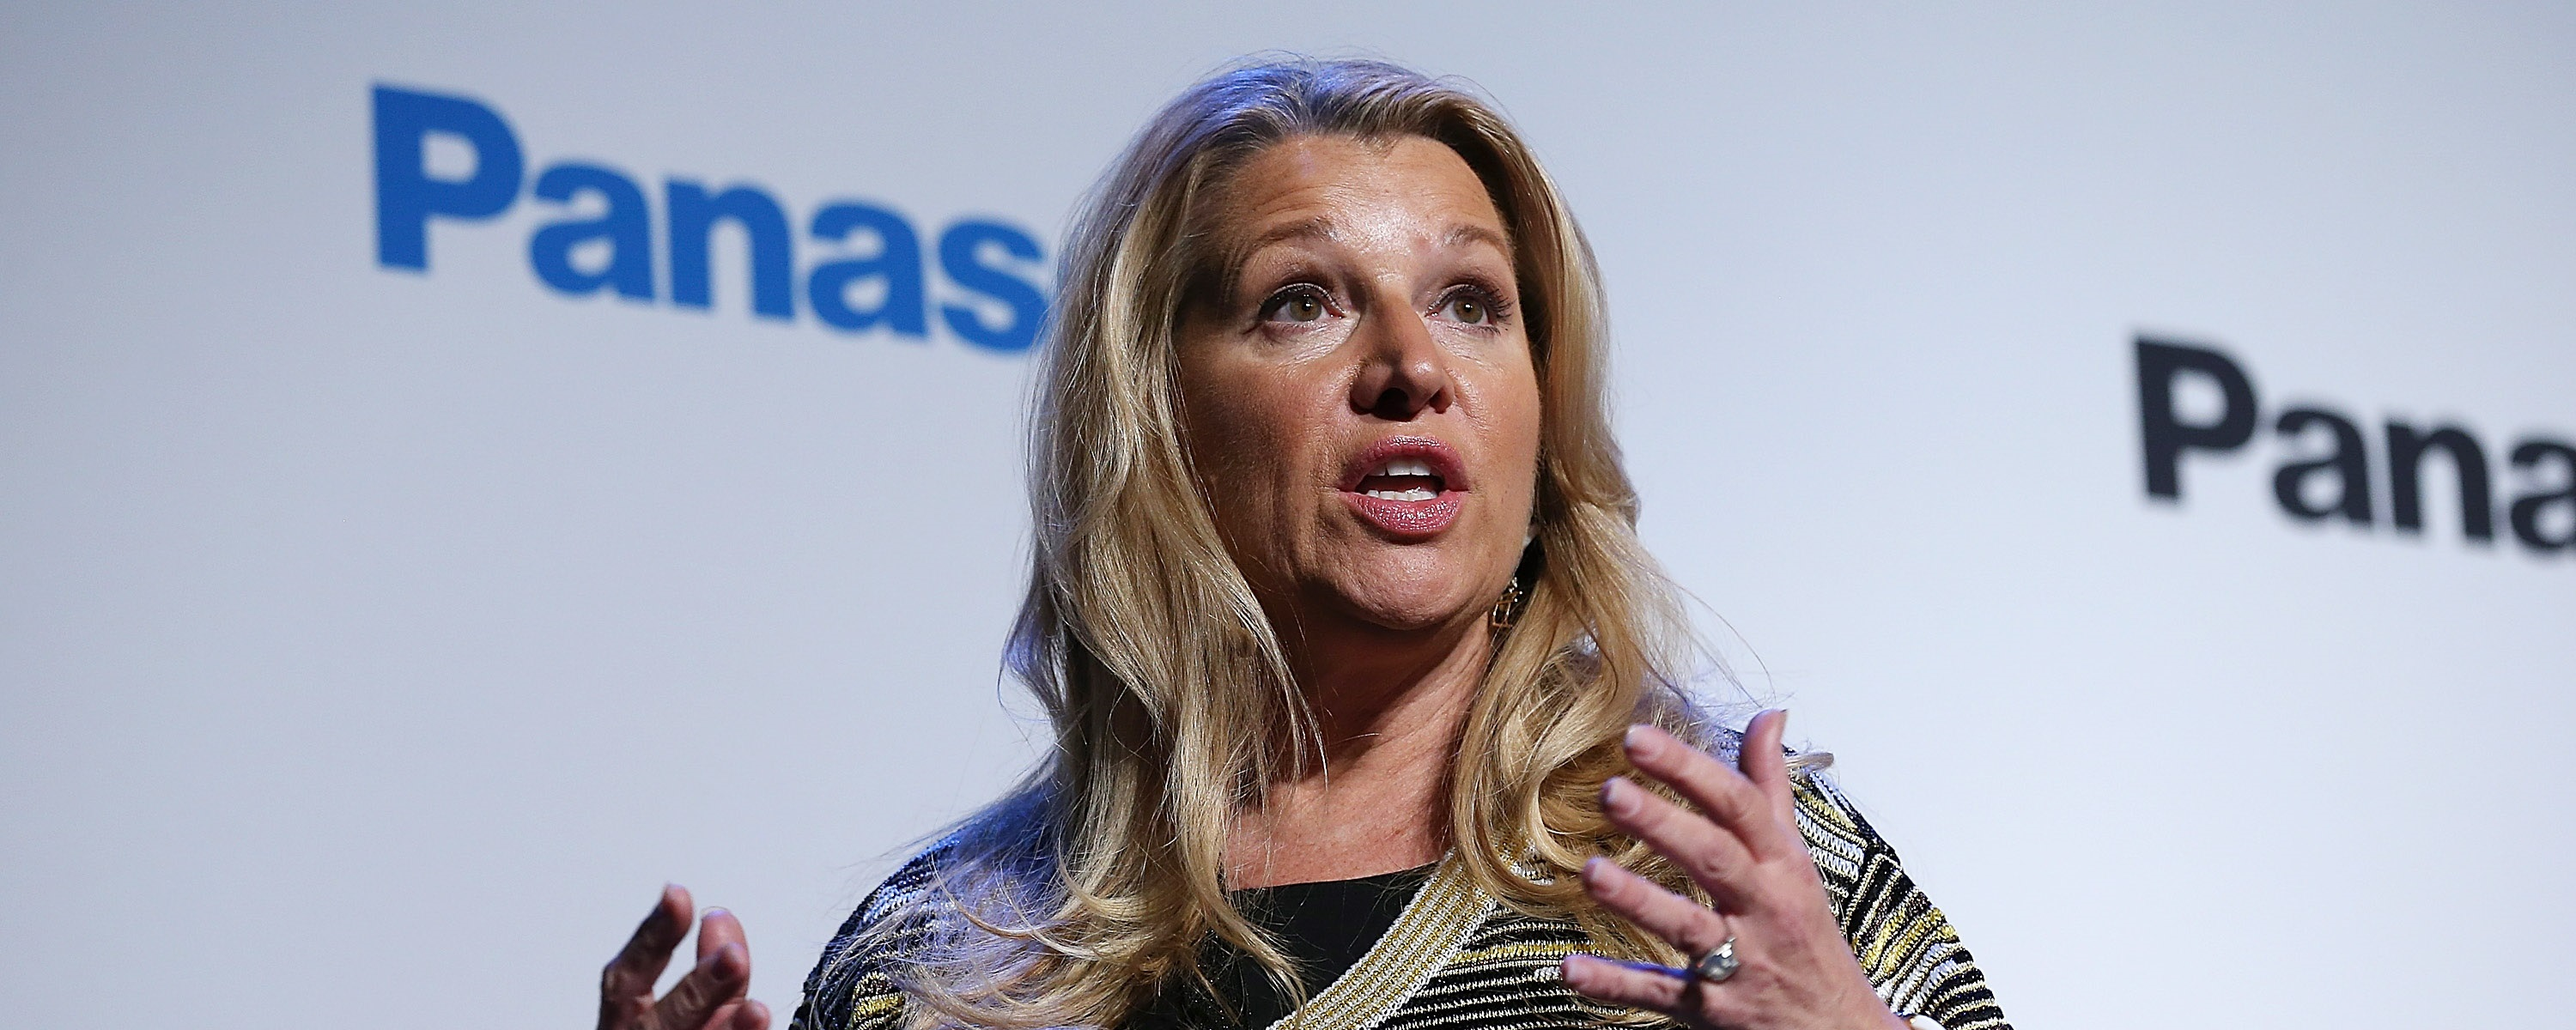 Mindy Grossman Speaking at the 2013 International CES Conference